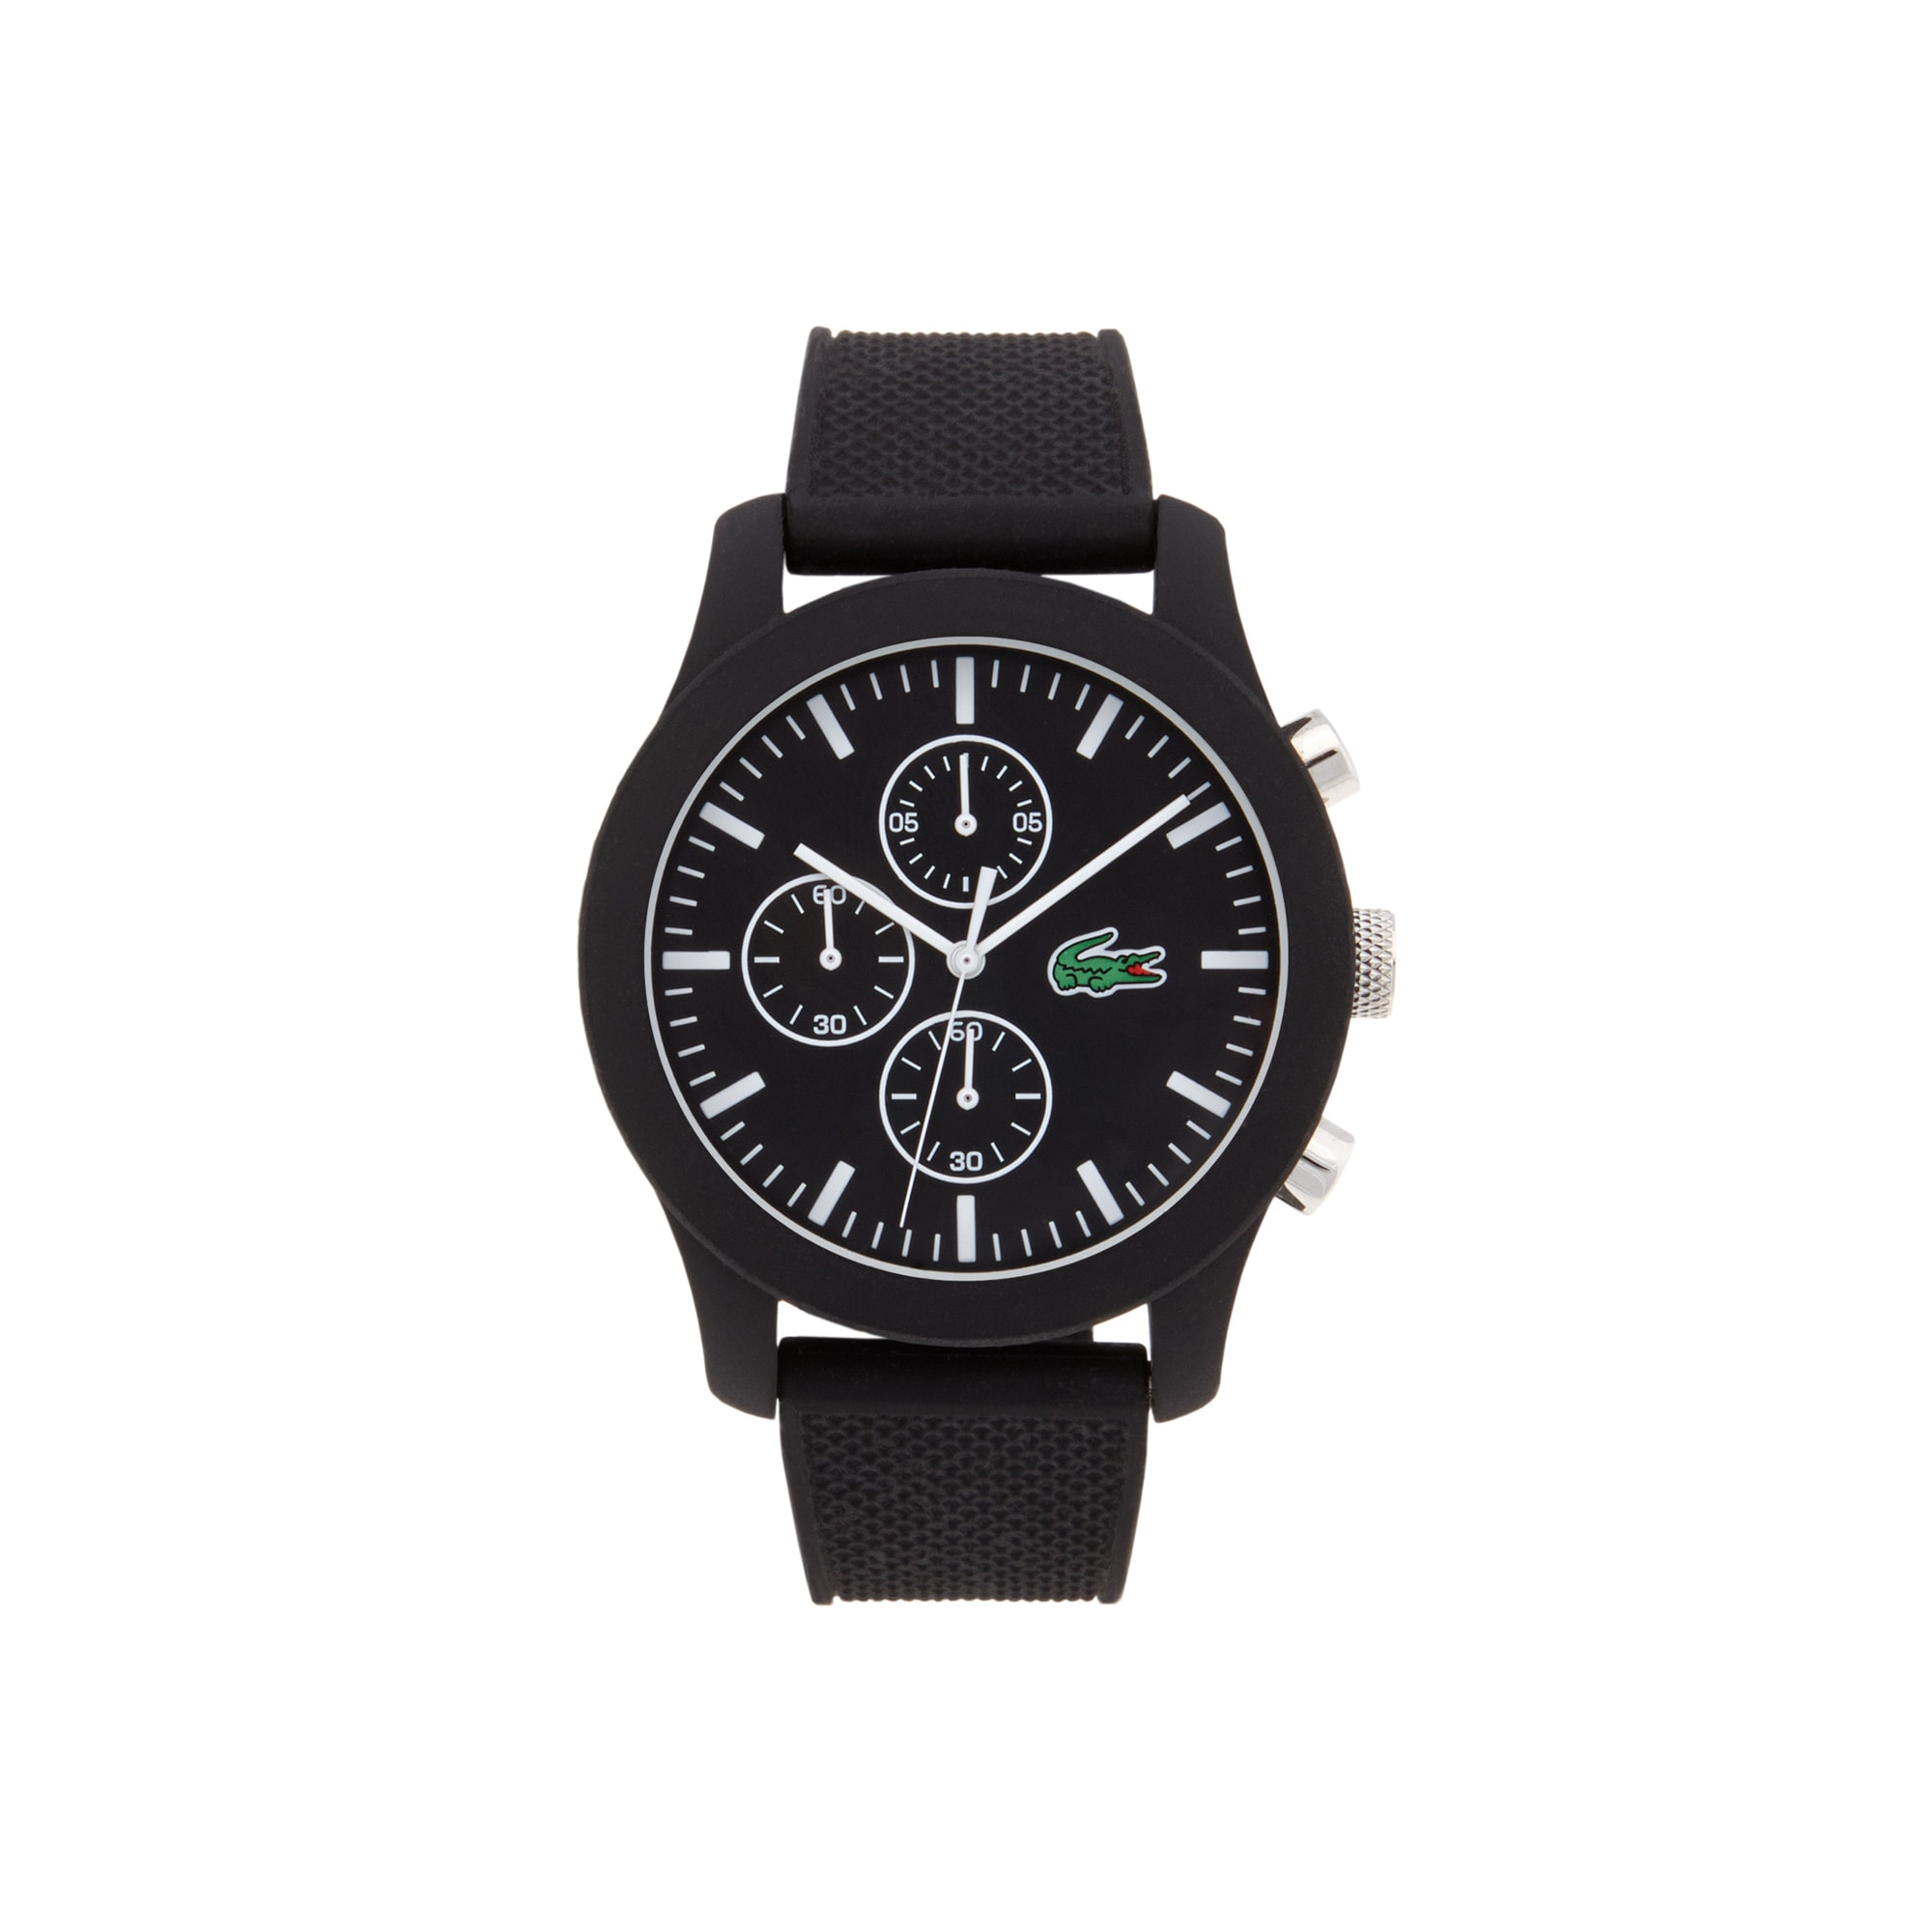 n black watches accessories target plastic c